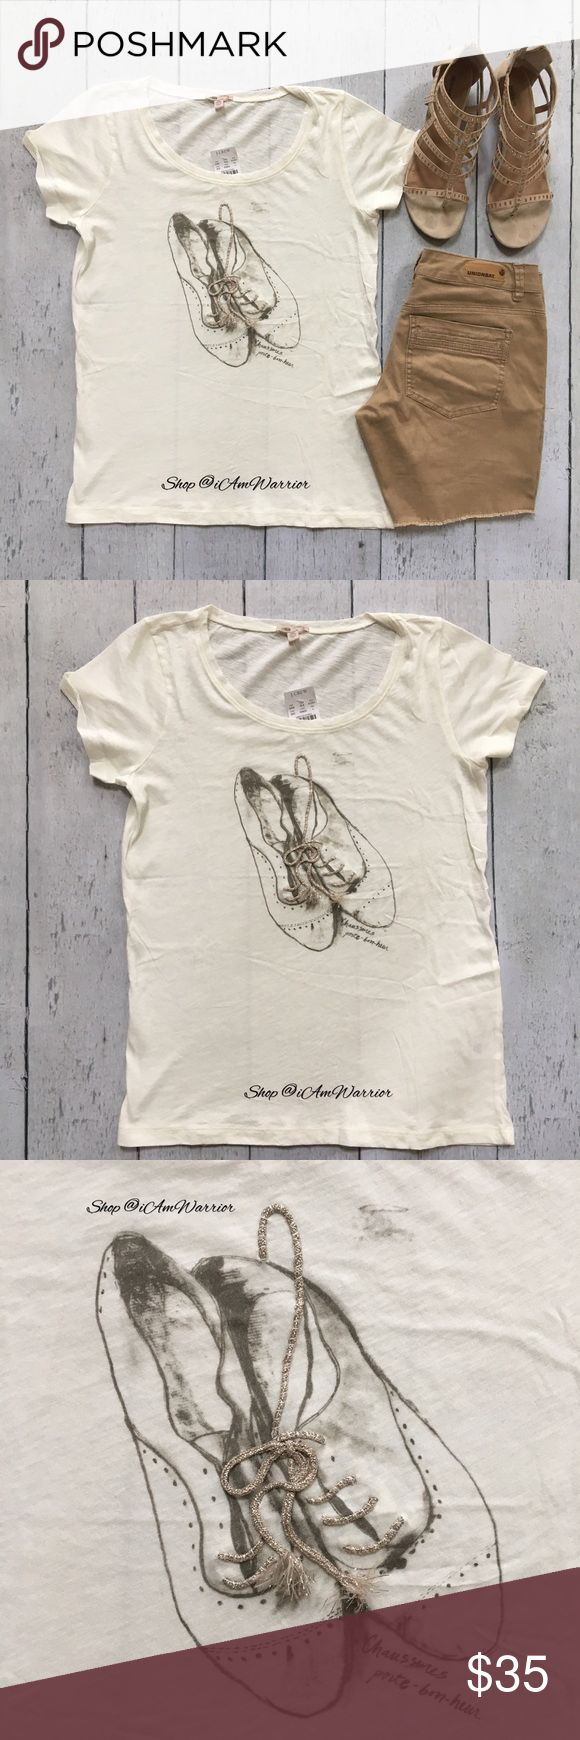 """🆕NWT J.Crew embroidered Oxford shoe t-shirt So cute I can't even handle this! Cream/ivory soft cotton shirt sleeve t-shirt with taupe/tan graphic print of ladies oxford lace up shoes. The laces in the shoes is actually metallic embroidery. Also has written in French 'Good looking shoes'! Size large, but could easily accommodate a medium. Please use provided measurements as a guide. Approximate unstretched measurements laying flat are: 26"""" long, 18.5"""" across bust. Please read bio regarding…"""